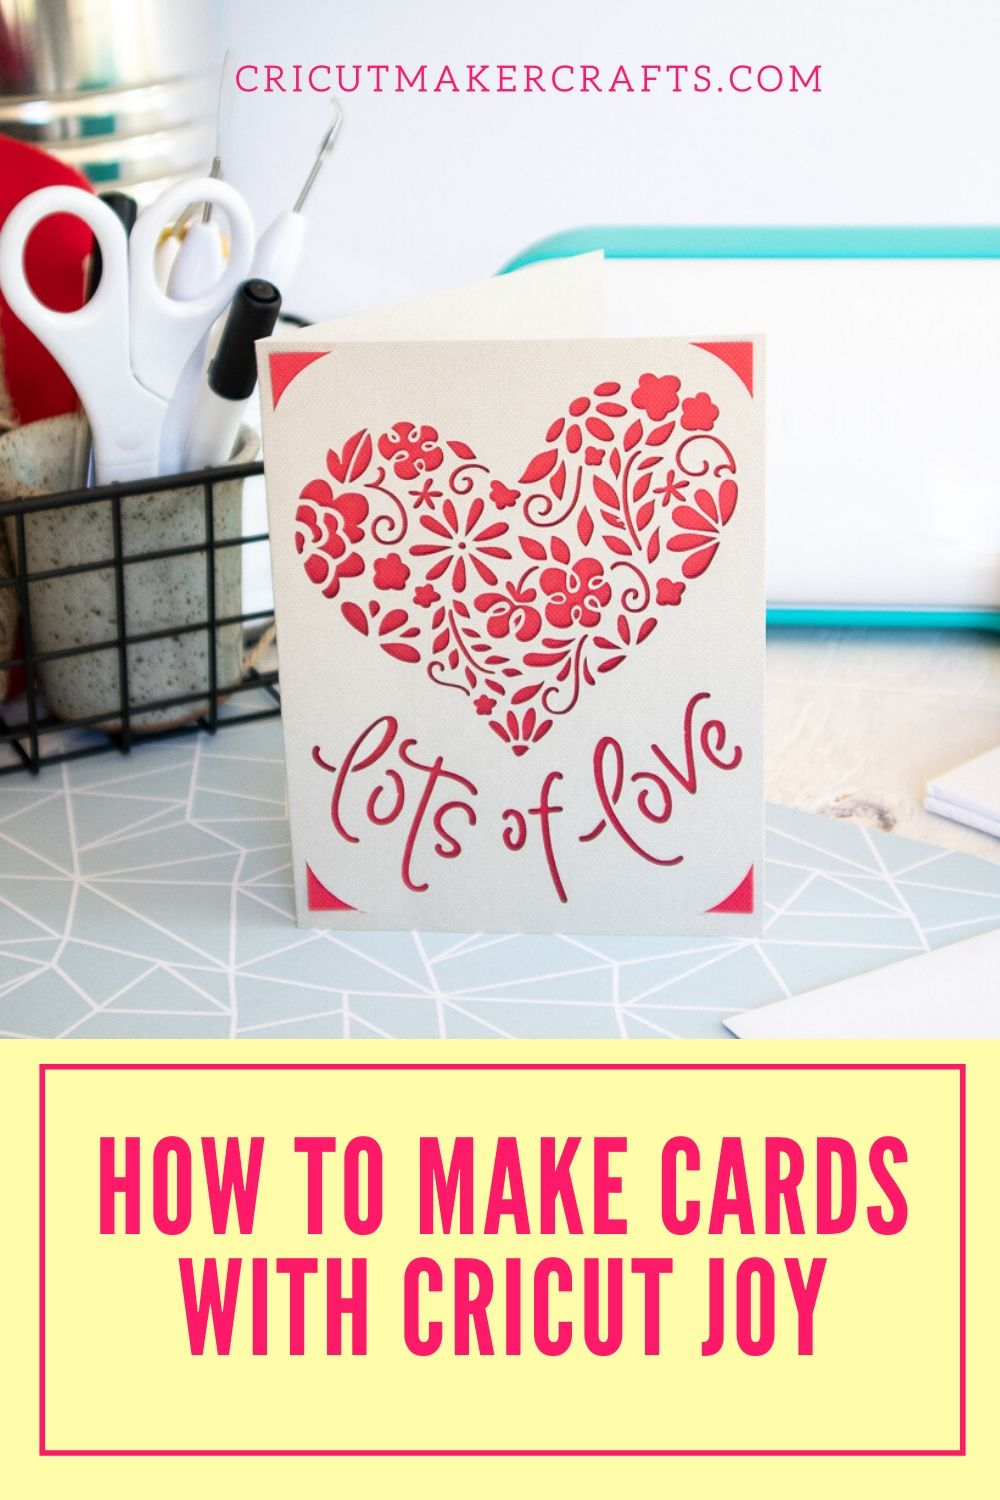 Lots of love card made with cricut joy